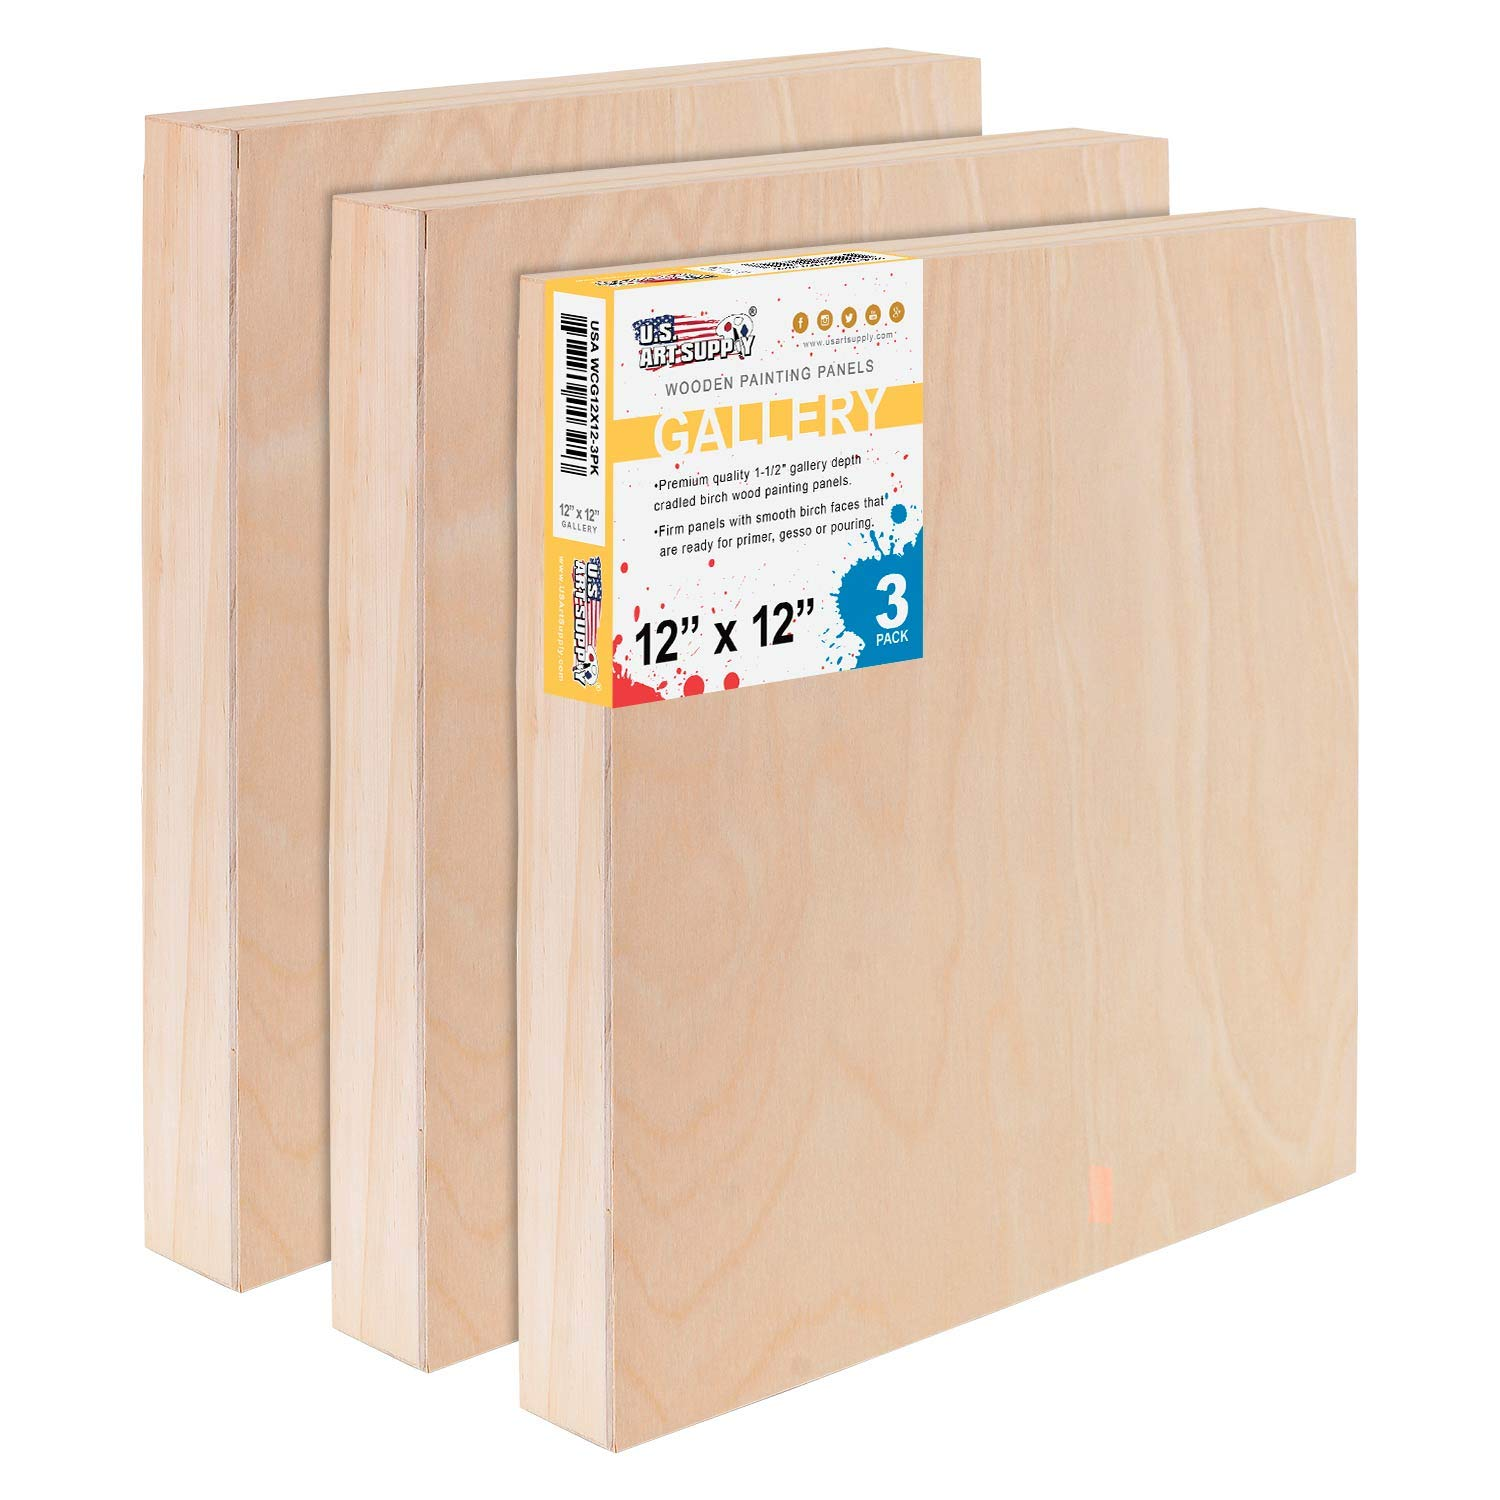 U.S. Art Supply 12'' x 12'' Birch Wood Paint Pouring Panel Boards, Gallery 1-1/2'' Deep Cradle (Pack of 3) - Artist Depth Wooden Wall Canvases - Painting Mixed-Media Craft, Acrylic, Oil, Encaustic